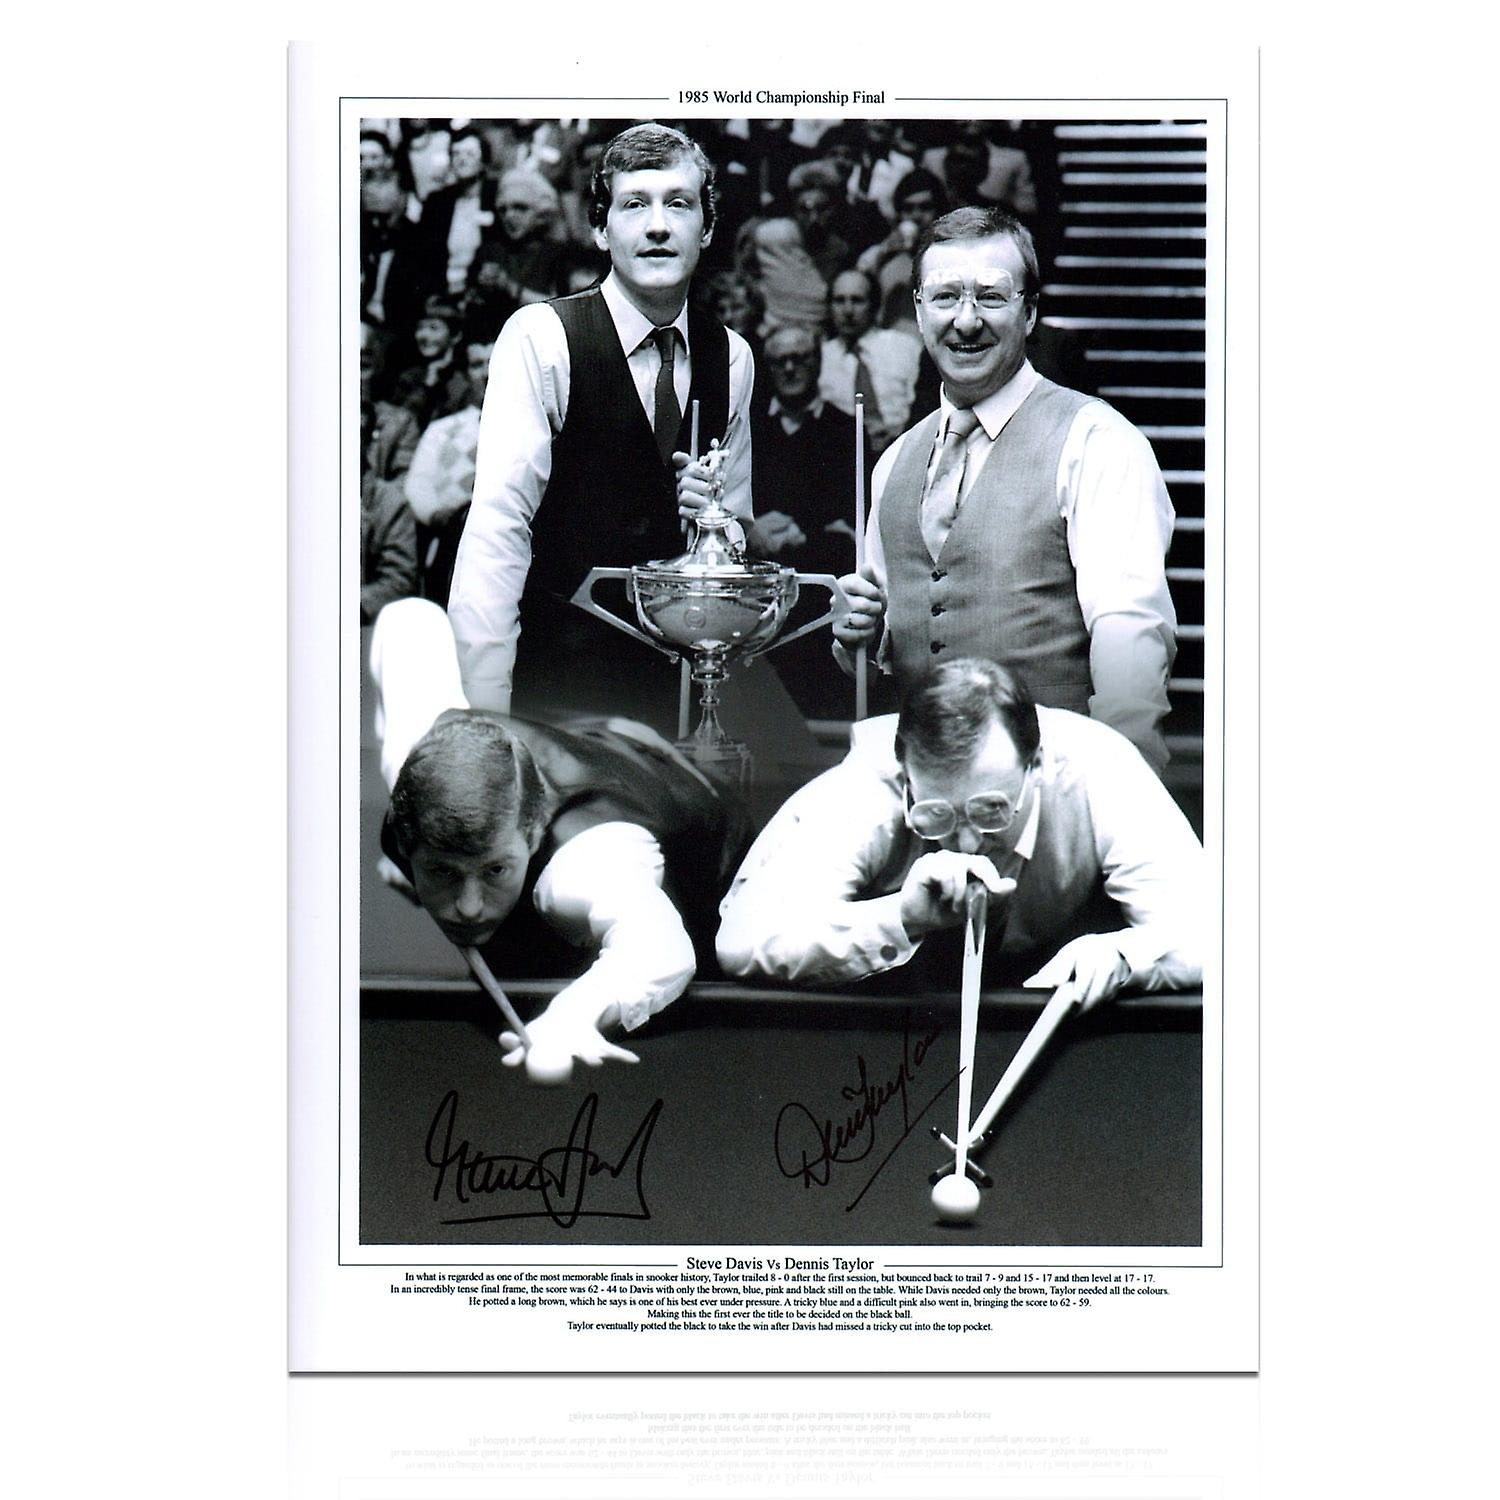 Signed Steve Davis And Dennis Taylor Snooker Photo: 1985 World Championship In Gift Box